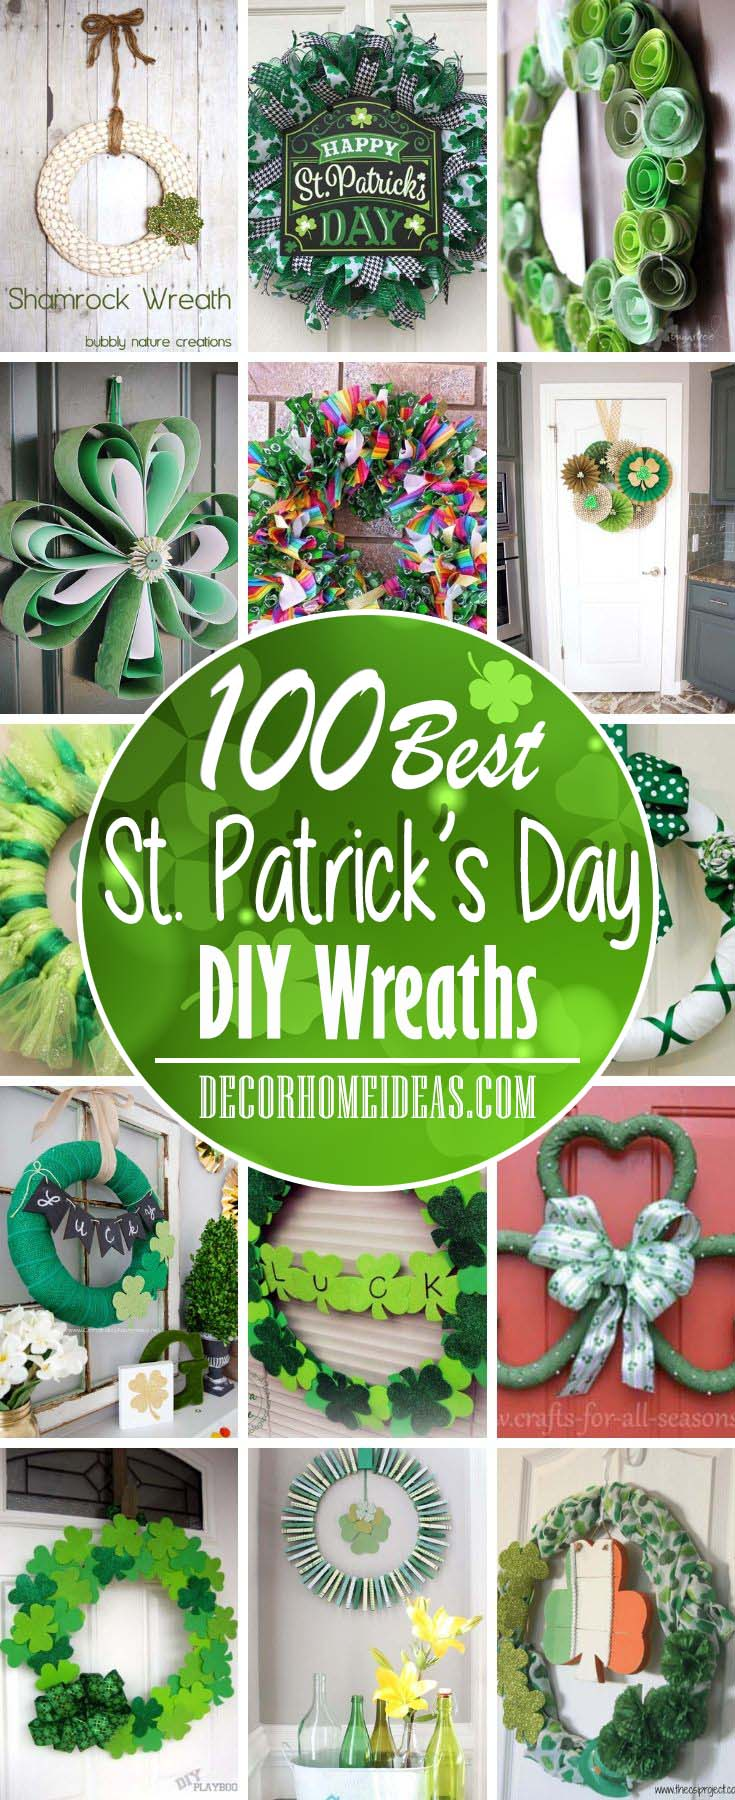 Best DIY Wreaths For St. Patrick's Day. Make a beautiful wreath to hang on your front door. Whether you're throwing a St. Patrick's Day party or celebrating with loved ones, dress up your front door with these fun, festive, and affordable St. Patrick's Day wreaths. #wreath #diy #decorhomeidas